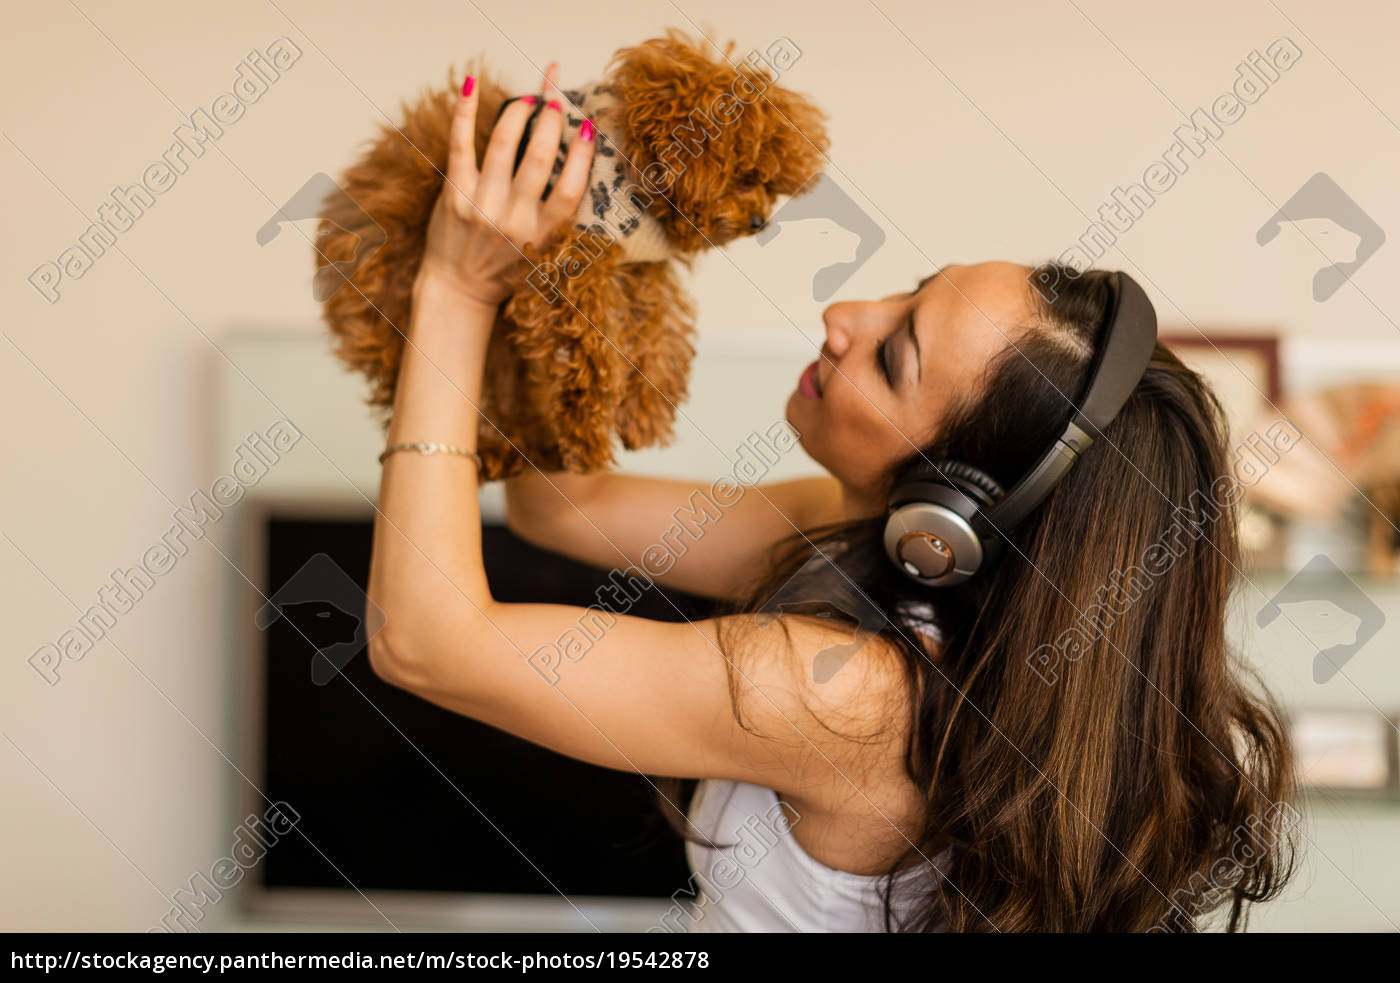 mid, adult, woman, wearing, headphones, and - 19542878